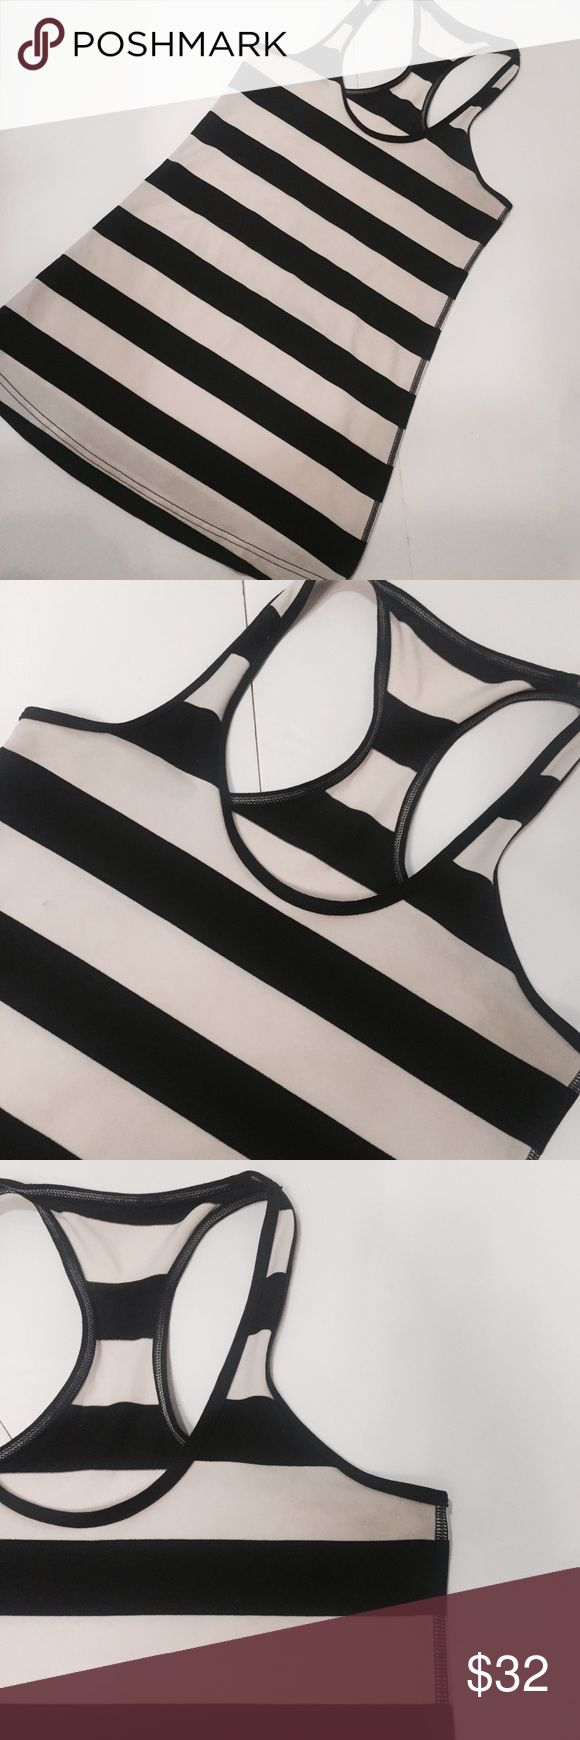 Lululemon cool racerback tank Lululemon black & white striped racerback tank • size small • purchased at the Robertson Blvd location • racerback detail • wear your own bra • macro stripes lululemon athletica Tops Tank Tops